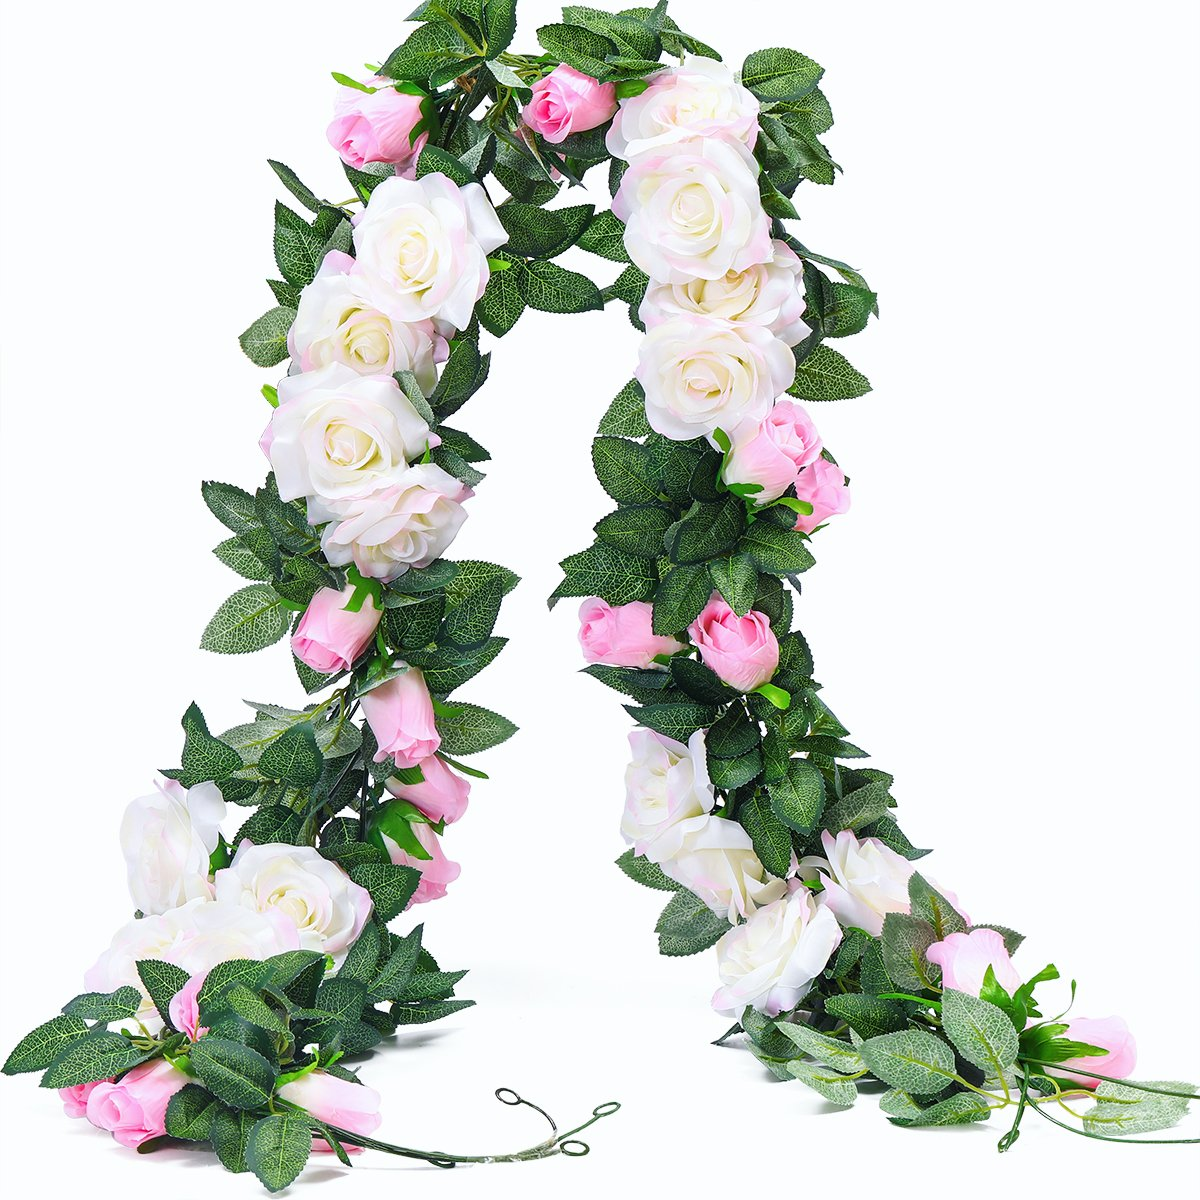 PARTY JOY 6.5Ft Artificial Rose Vine Silk Flower Garland Hanging Baskets Plants Home Outdoor Wedding Arch Garden Wall Decor,Pack of 2 (White&Pink) by PARTY JOY